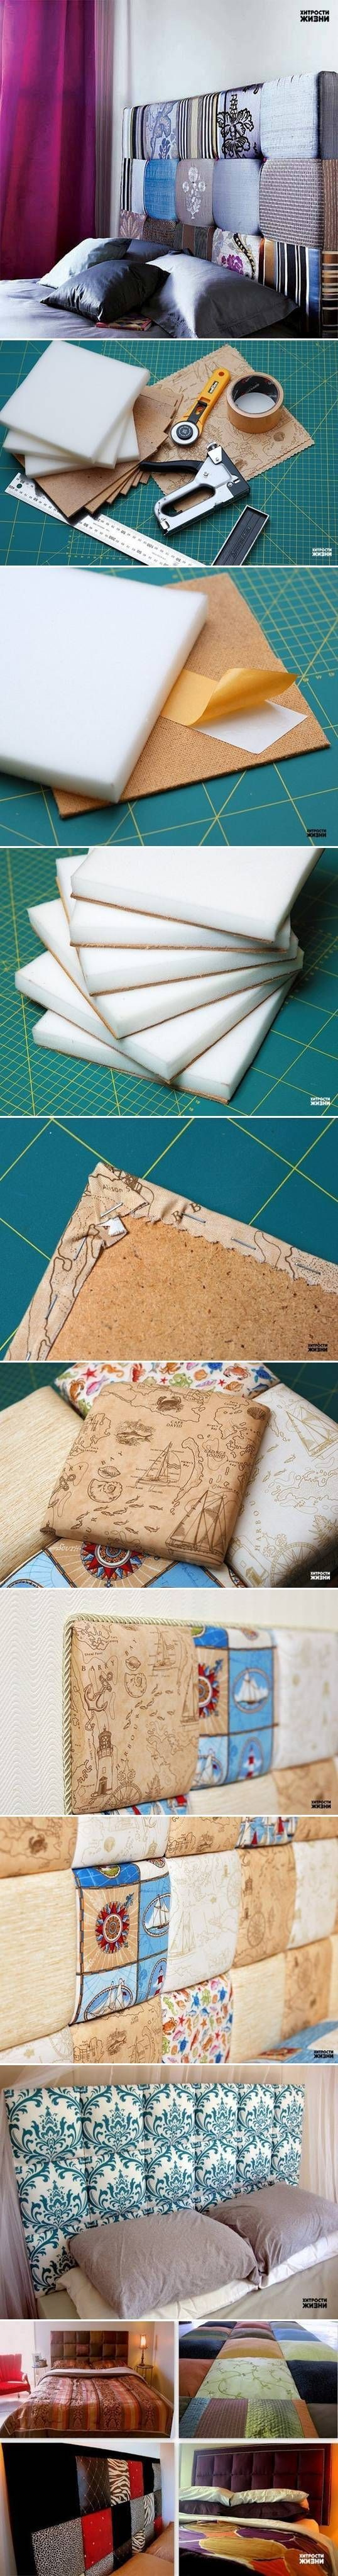 cool idea...can look like tufting!  DIY Soft Bed Headboard